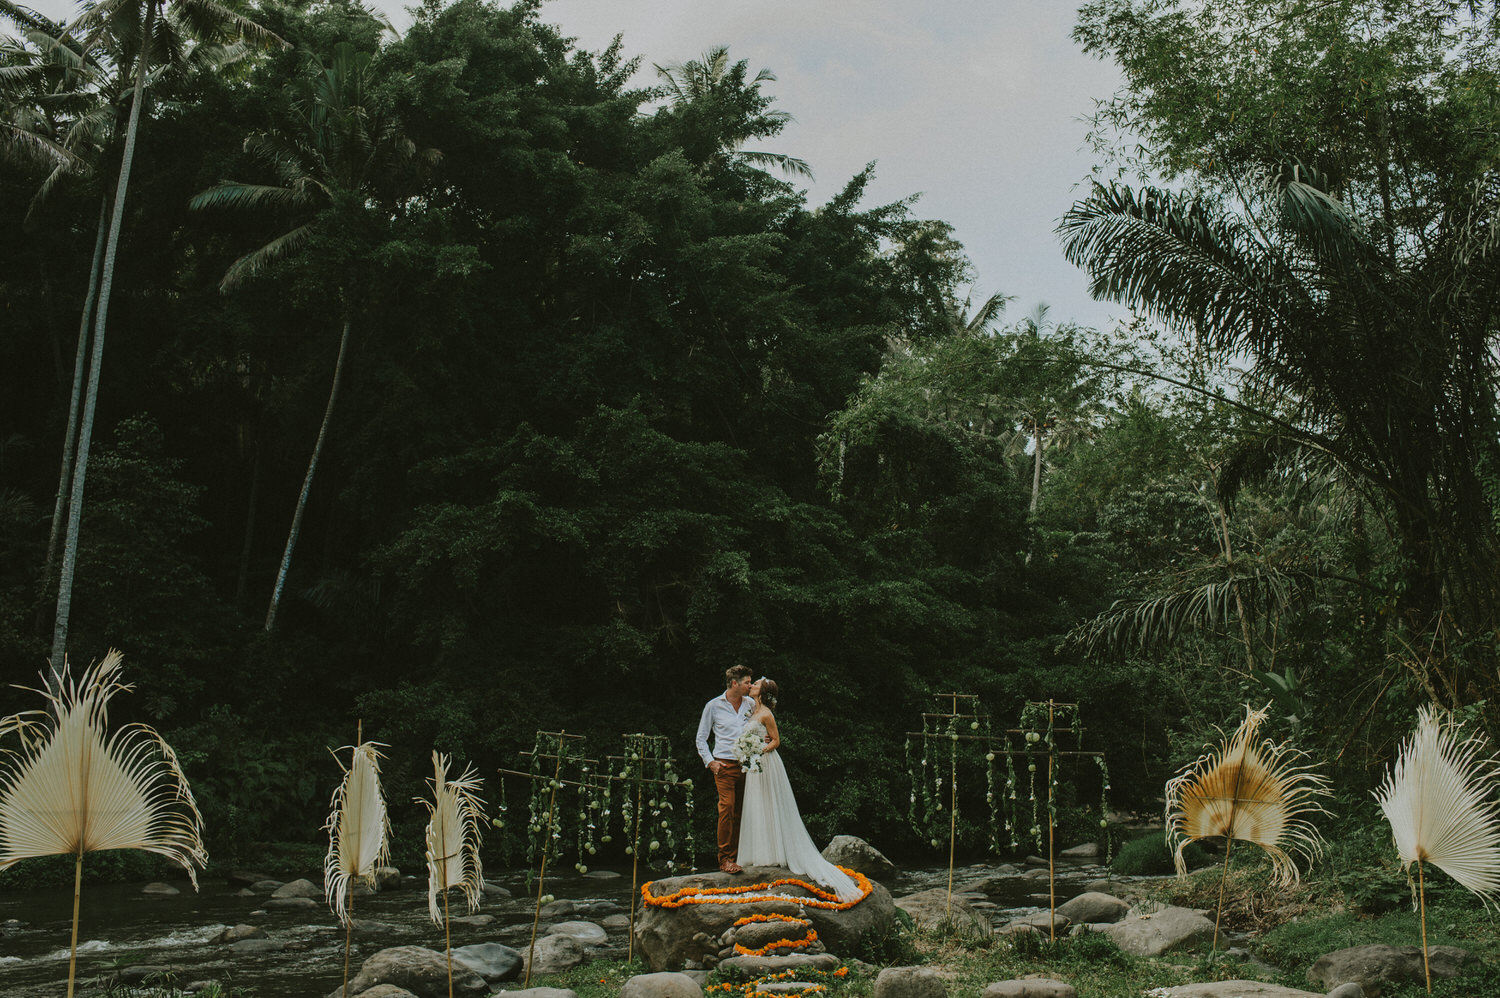 bali-wedding-ubud-wedding-wedding-destination-diktatphotography-kadek-artayasa-elaine-and-glenn-092